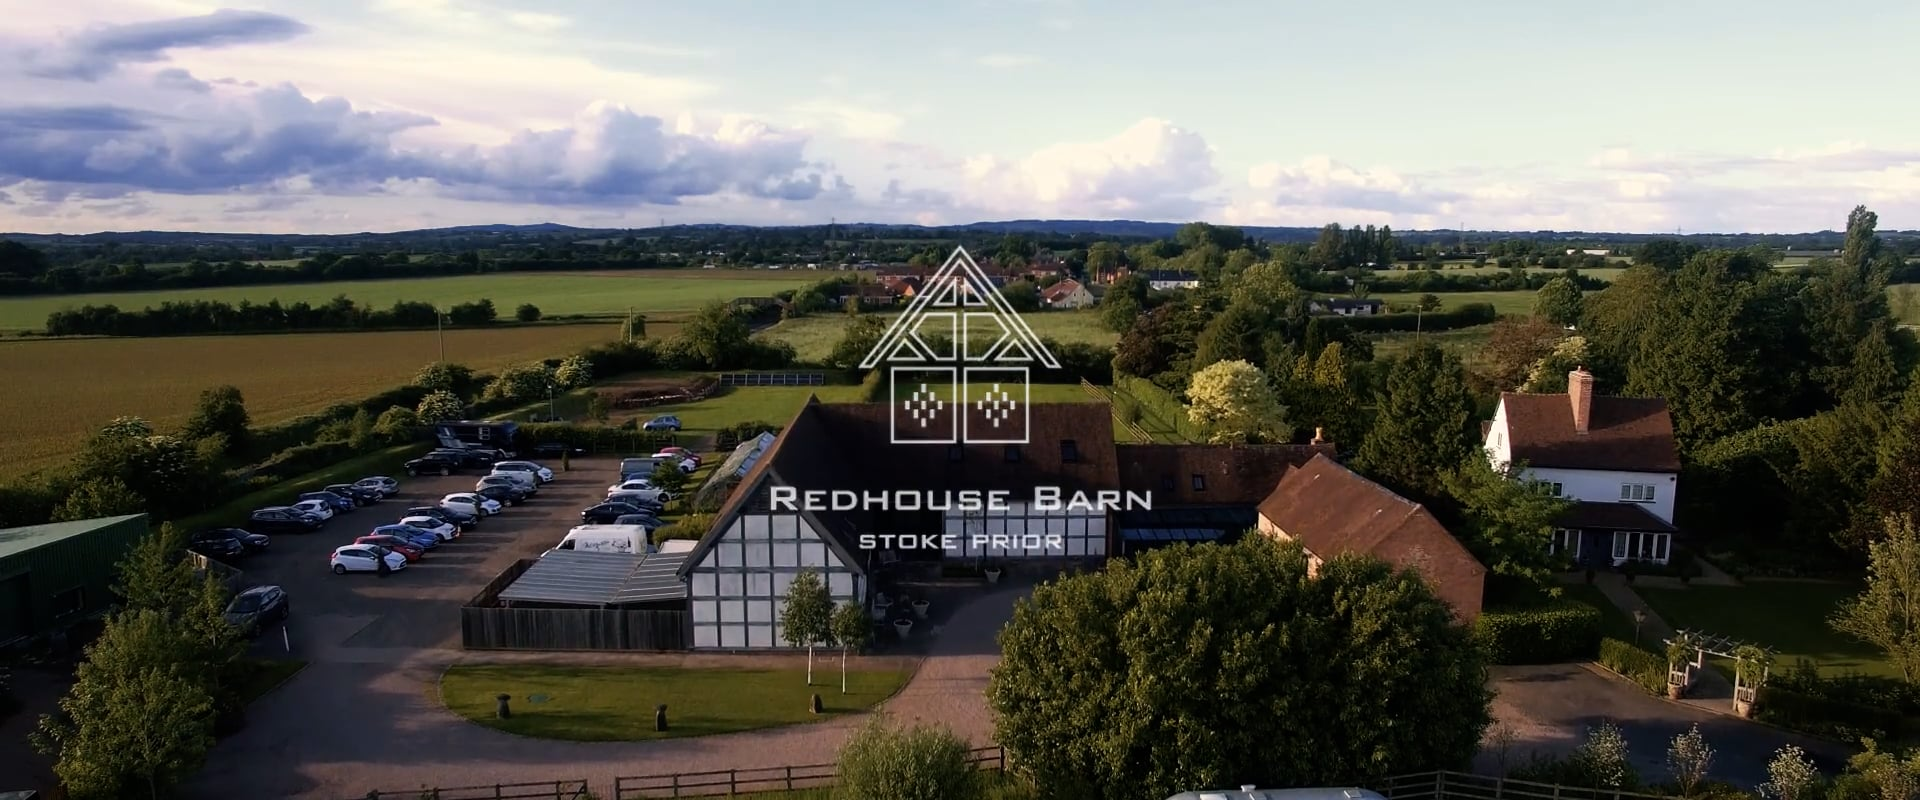 Redhouse Barn Promotional Video